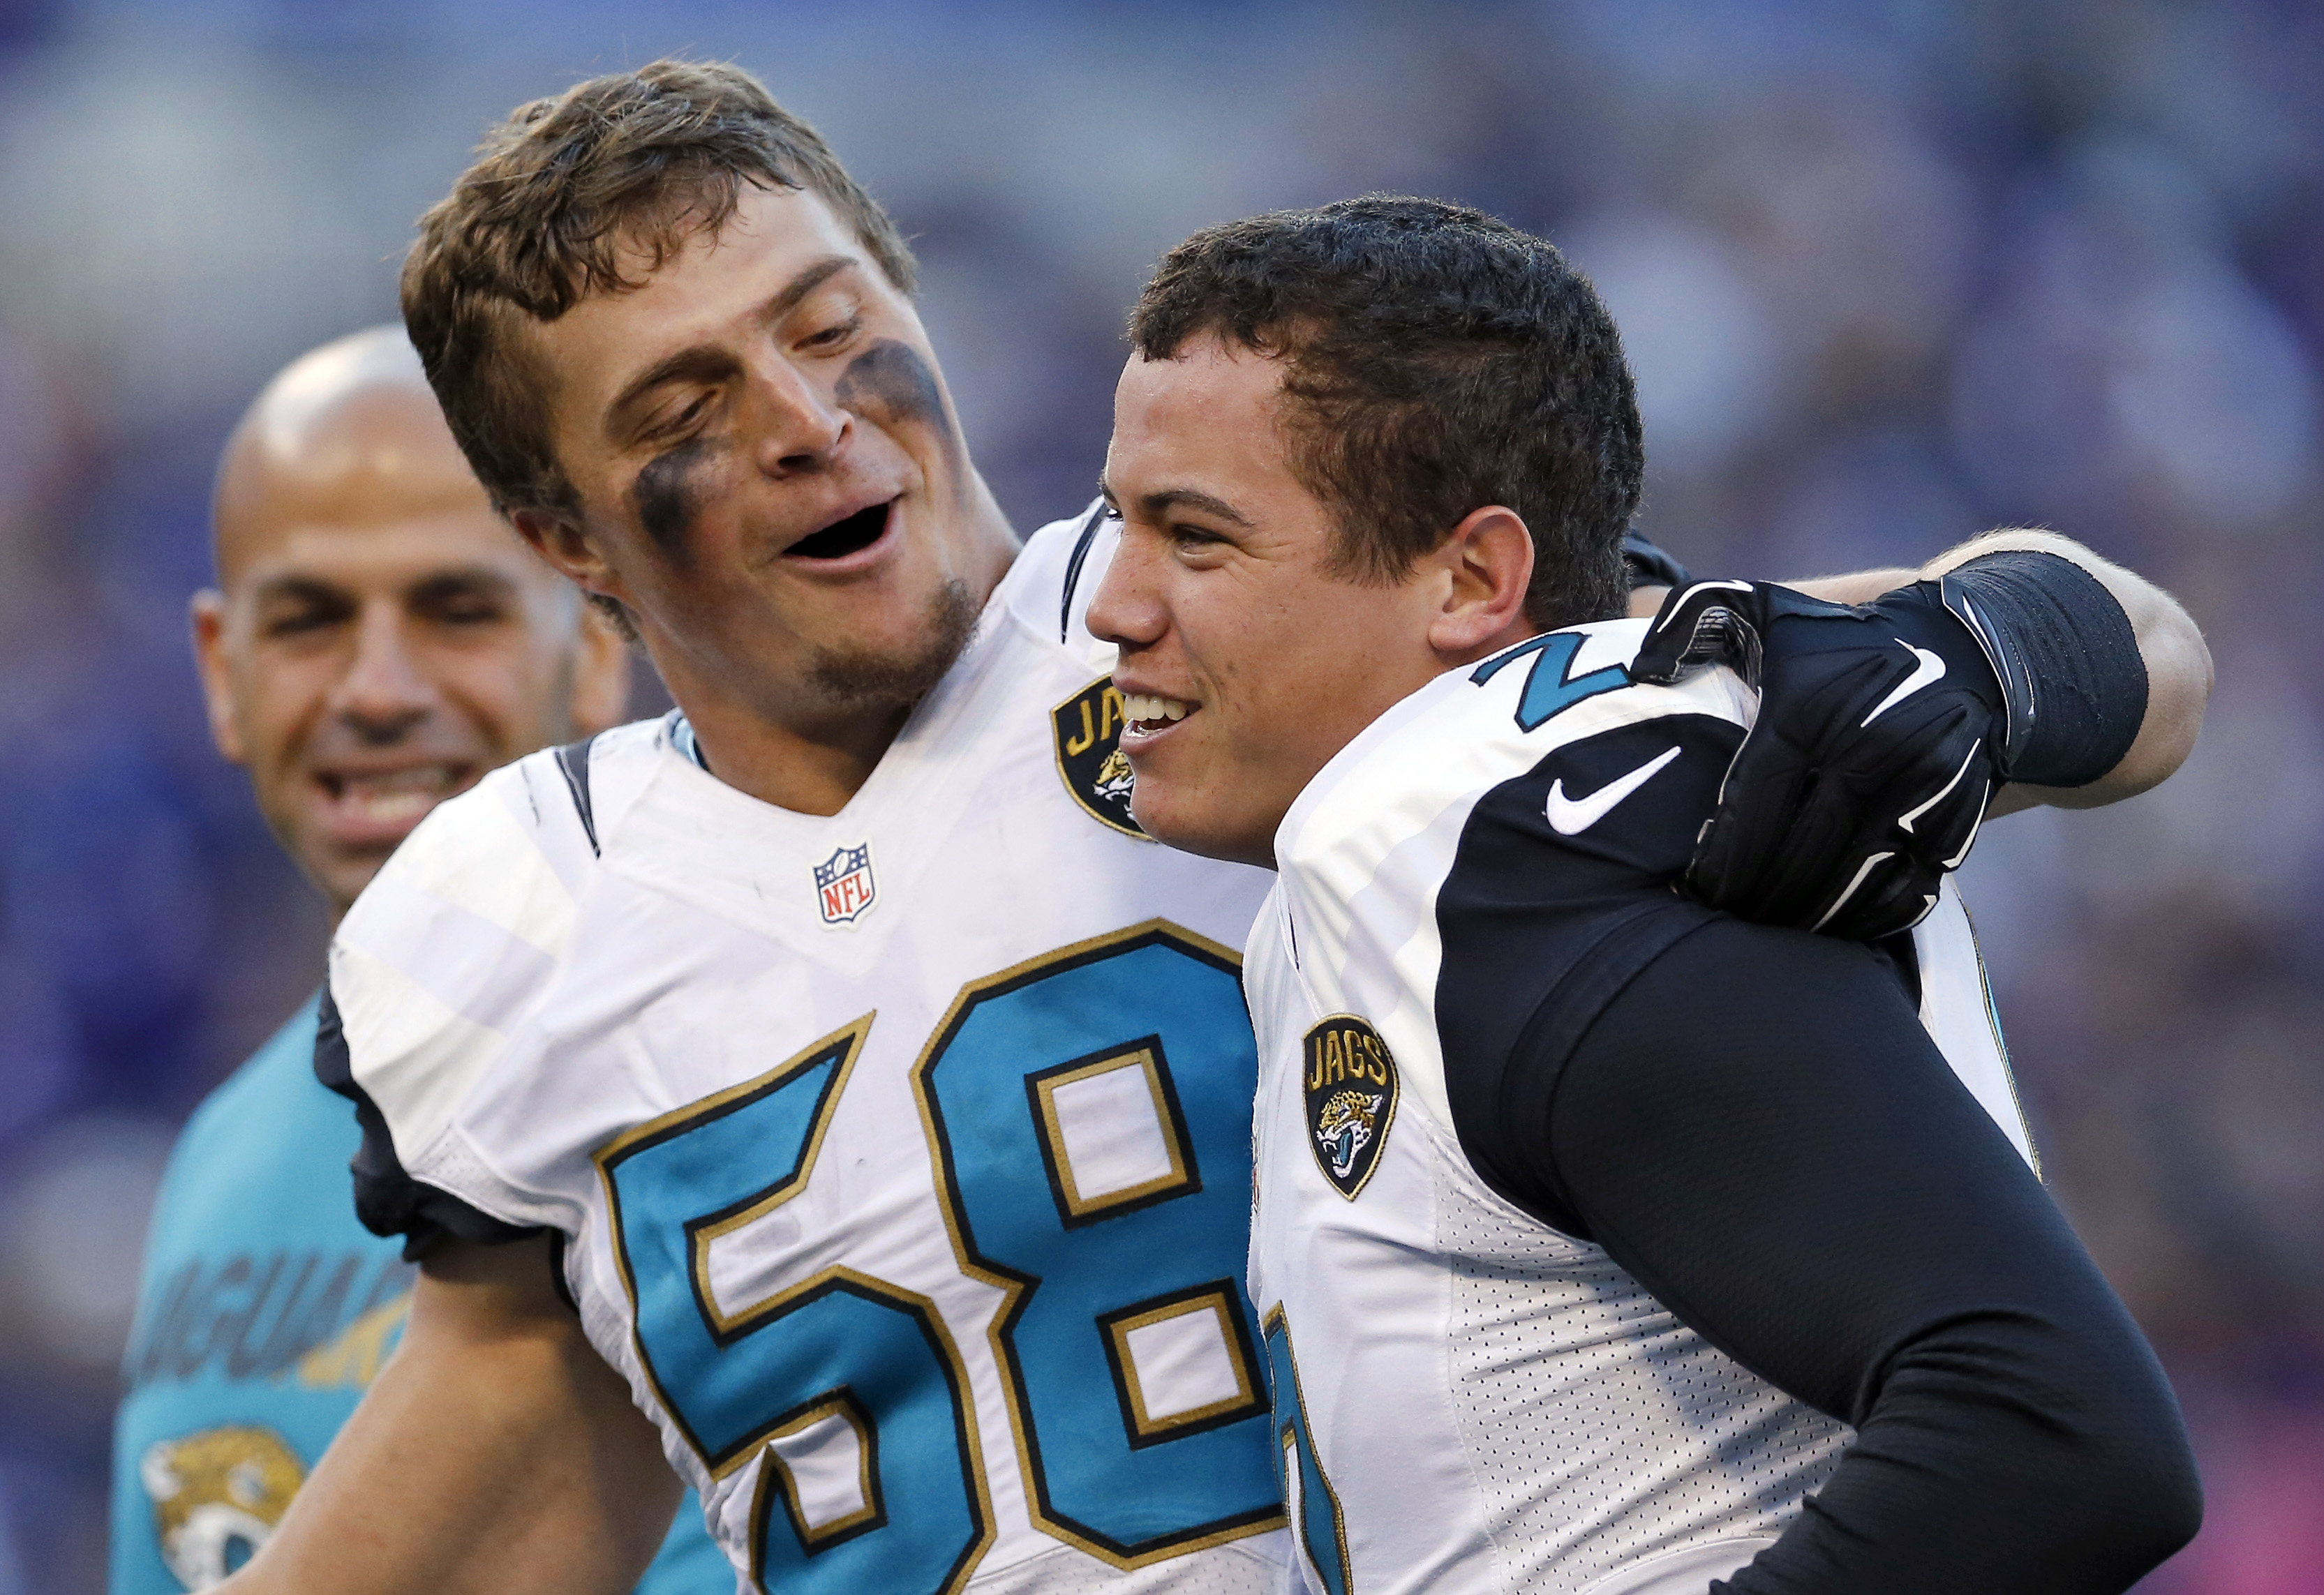 Jacksonville Jaguars linebacker Jordie Tripp, left, celebrates with kicker Jason Myers after Myers kicked the game-winning field goal in the final moments of an NFL football game against the Baltimore Ravens, Sunday, Nov. 15, 2015, in Baltimore. Jacksonvi